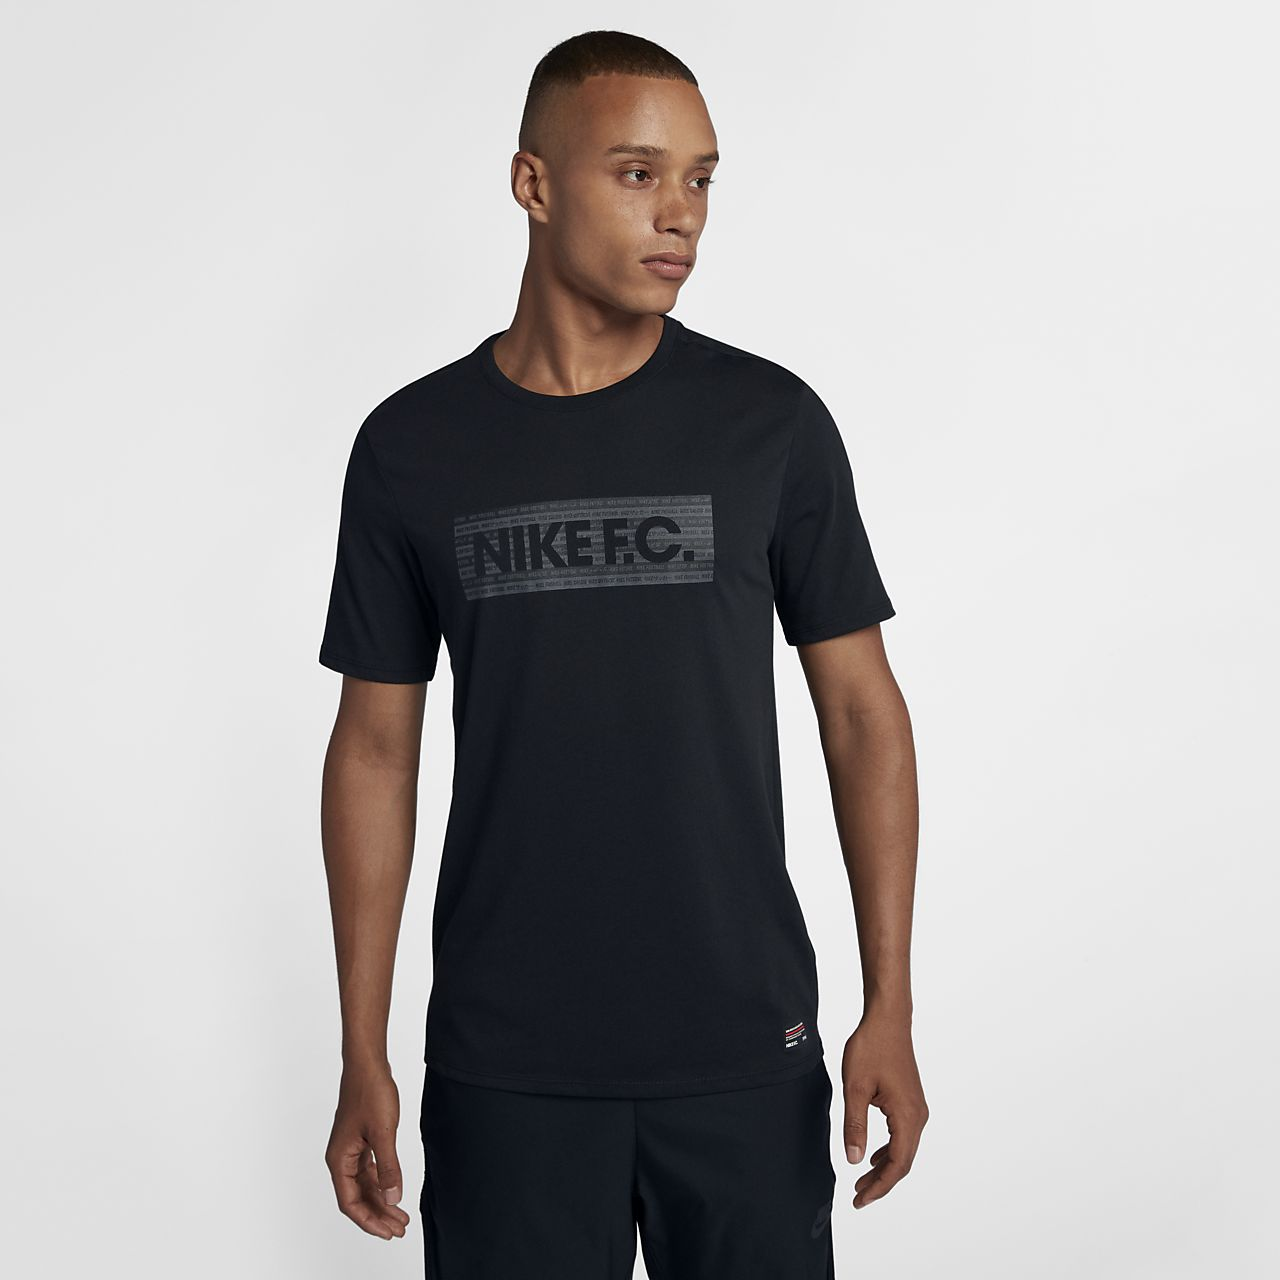 Nike F.C. Dri-FIT Men's Football T-Shirt